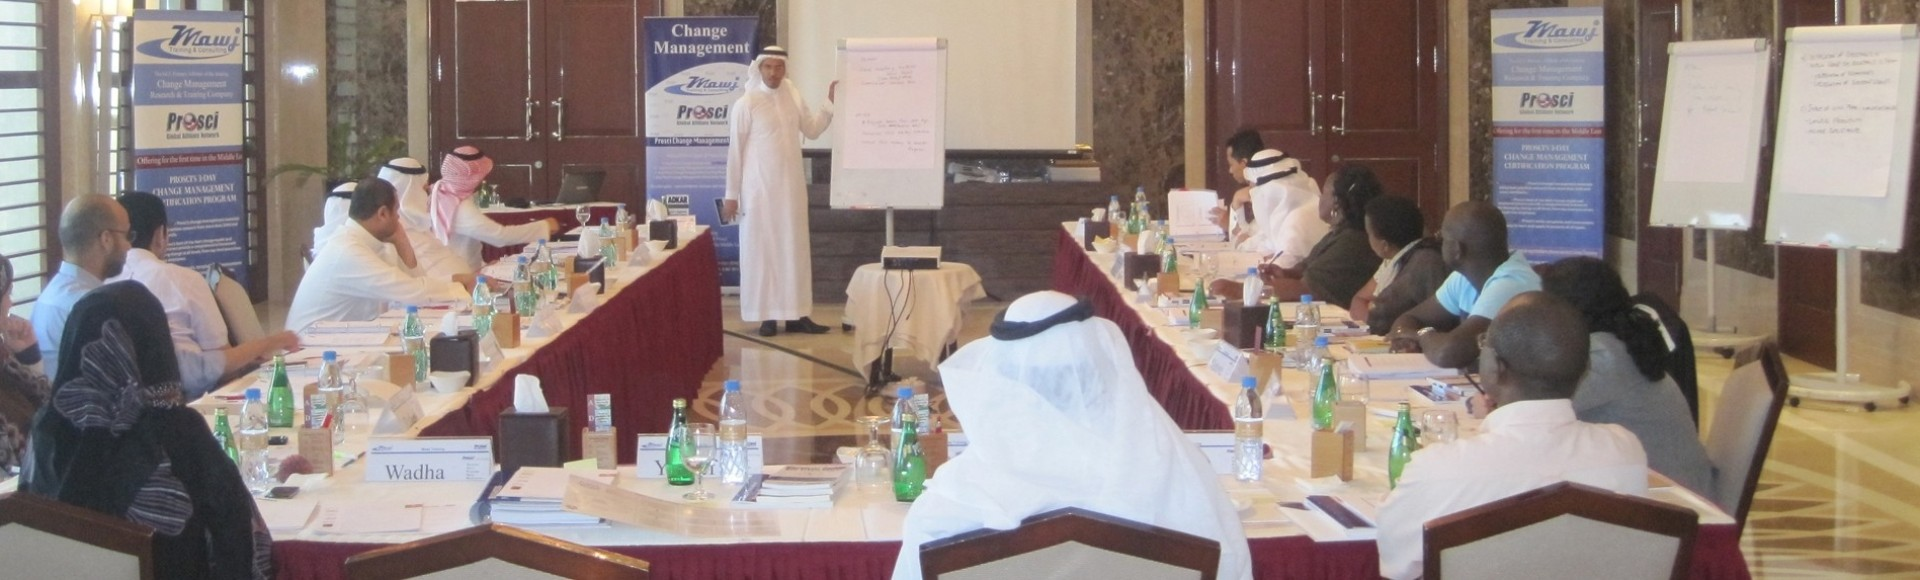 1-day Prosci's Delivering Project Results workshop for Project team